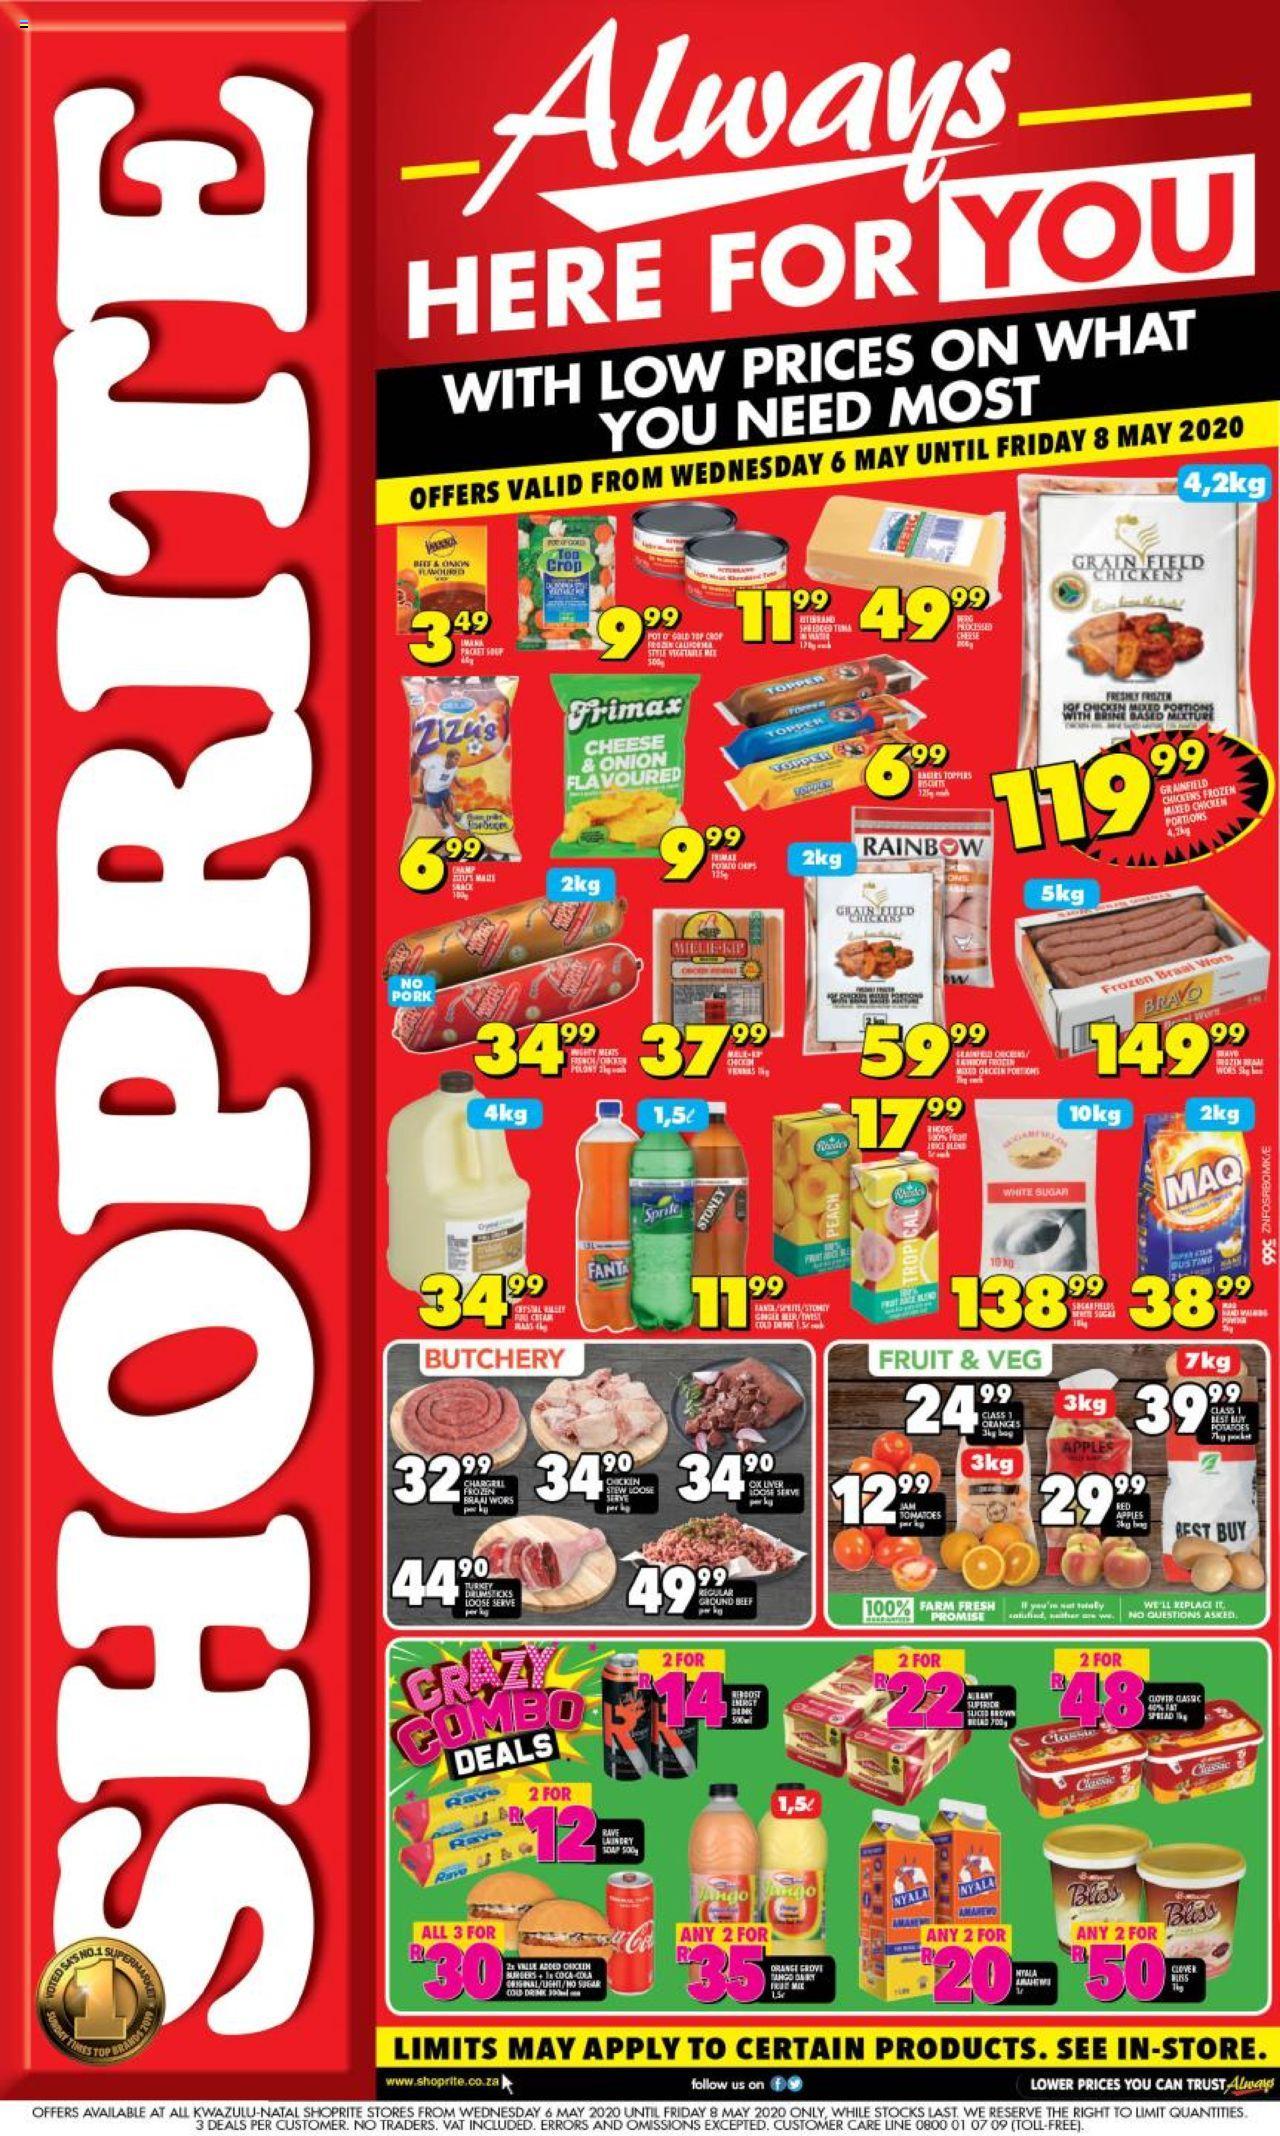 shoprite specials always here for you 6 may 2020